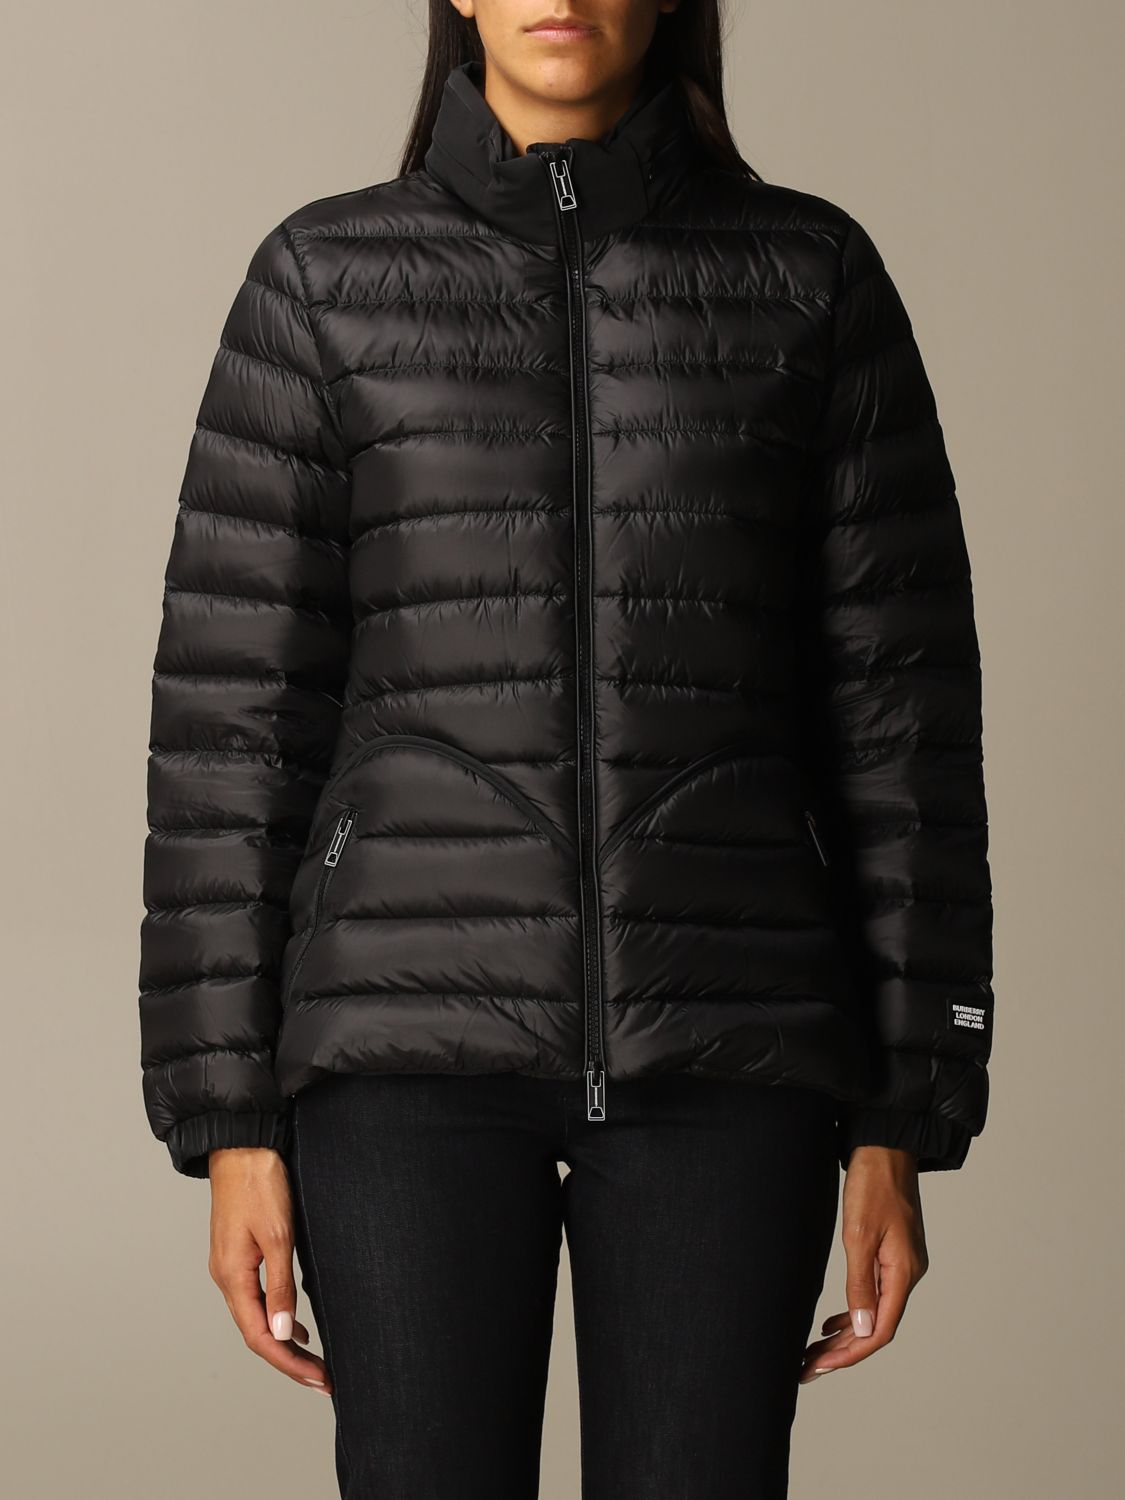 Jacket Burberry: Jacket women Burberry black 1